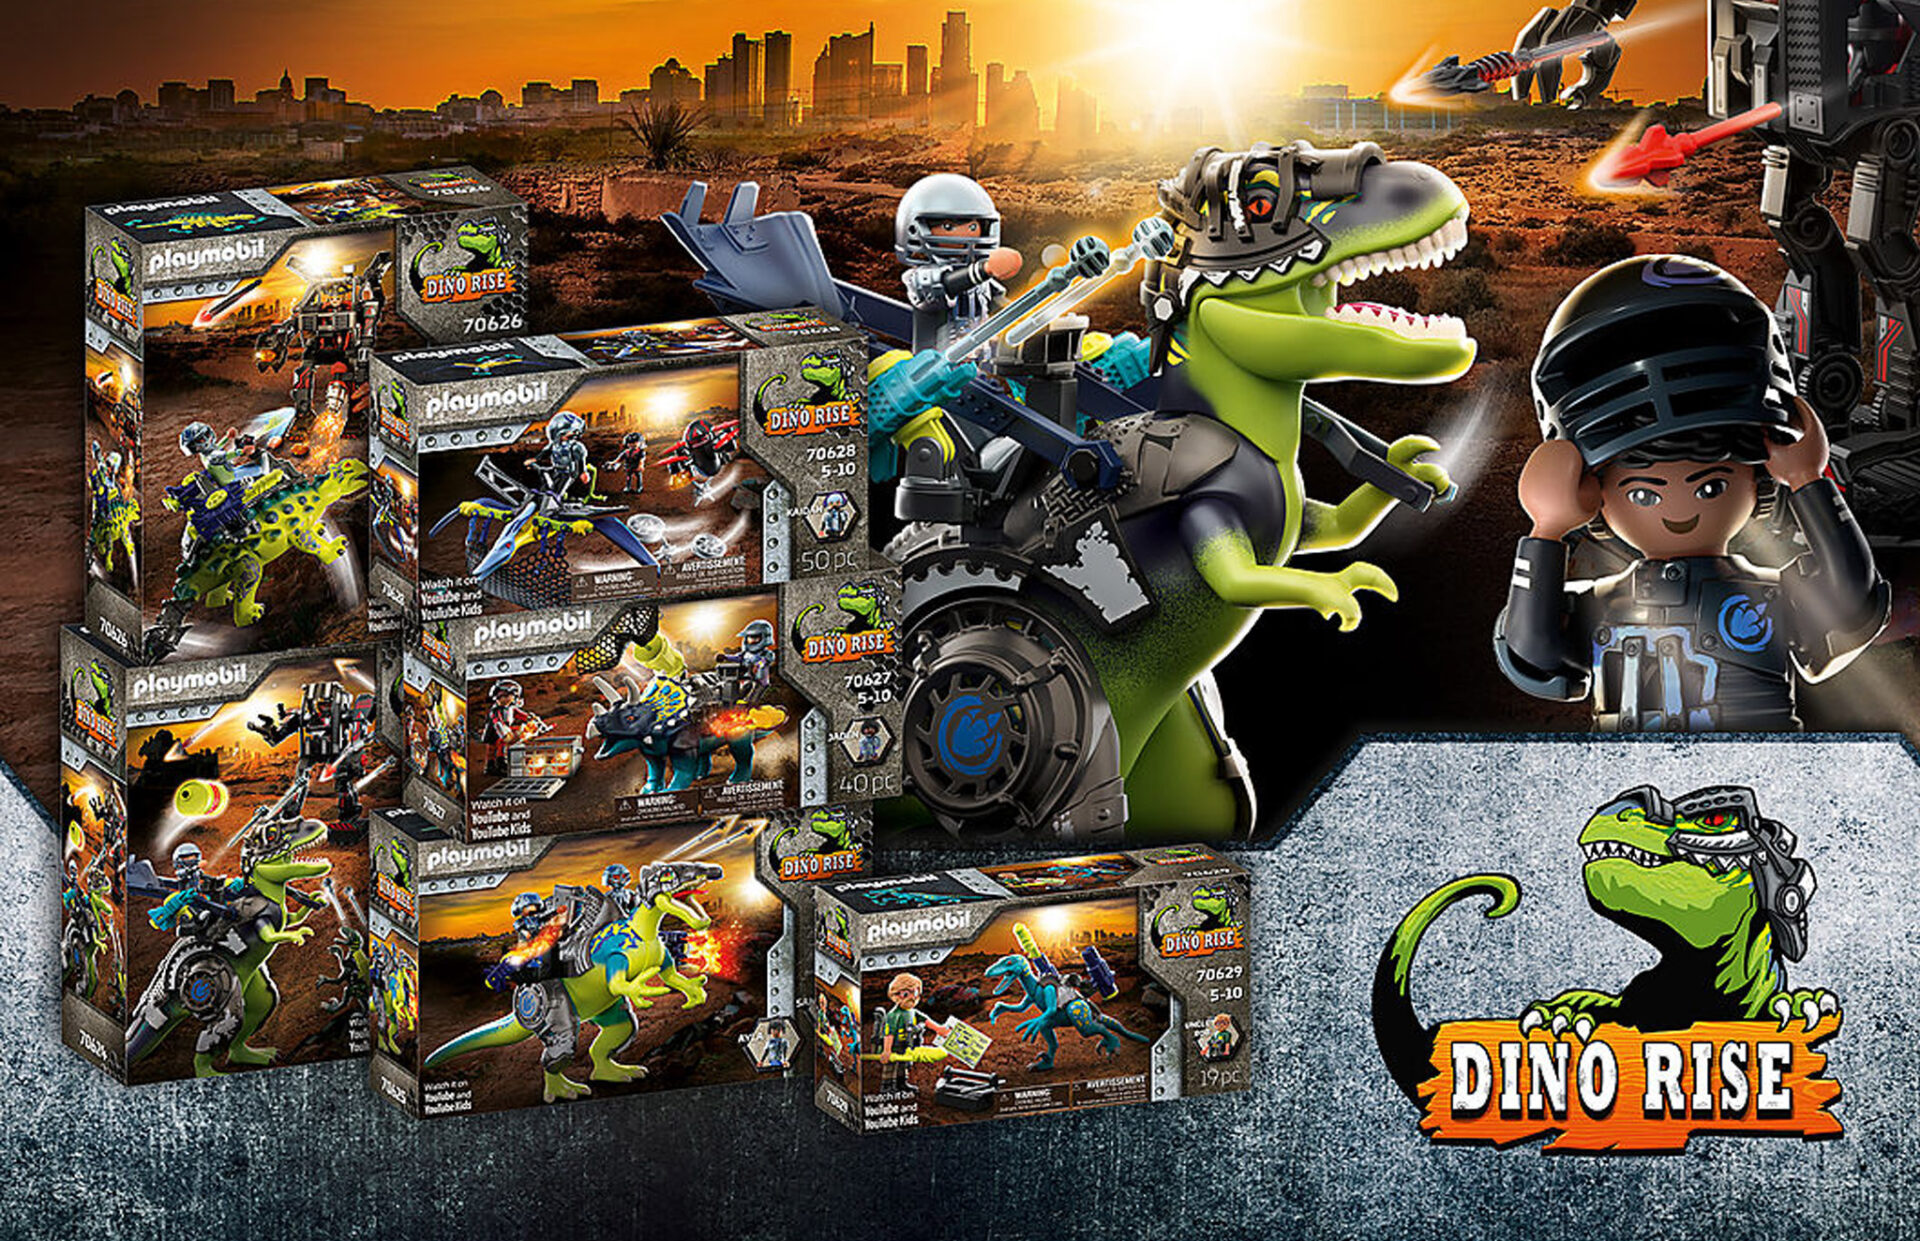 Playmobil launches all-new Dino Rise range and YouTube Series – The Legend of Dino Rock